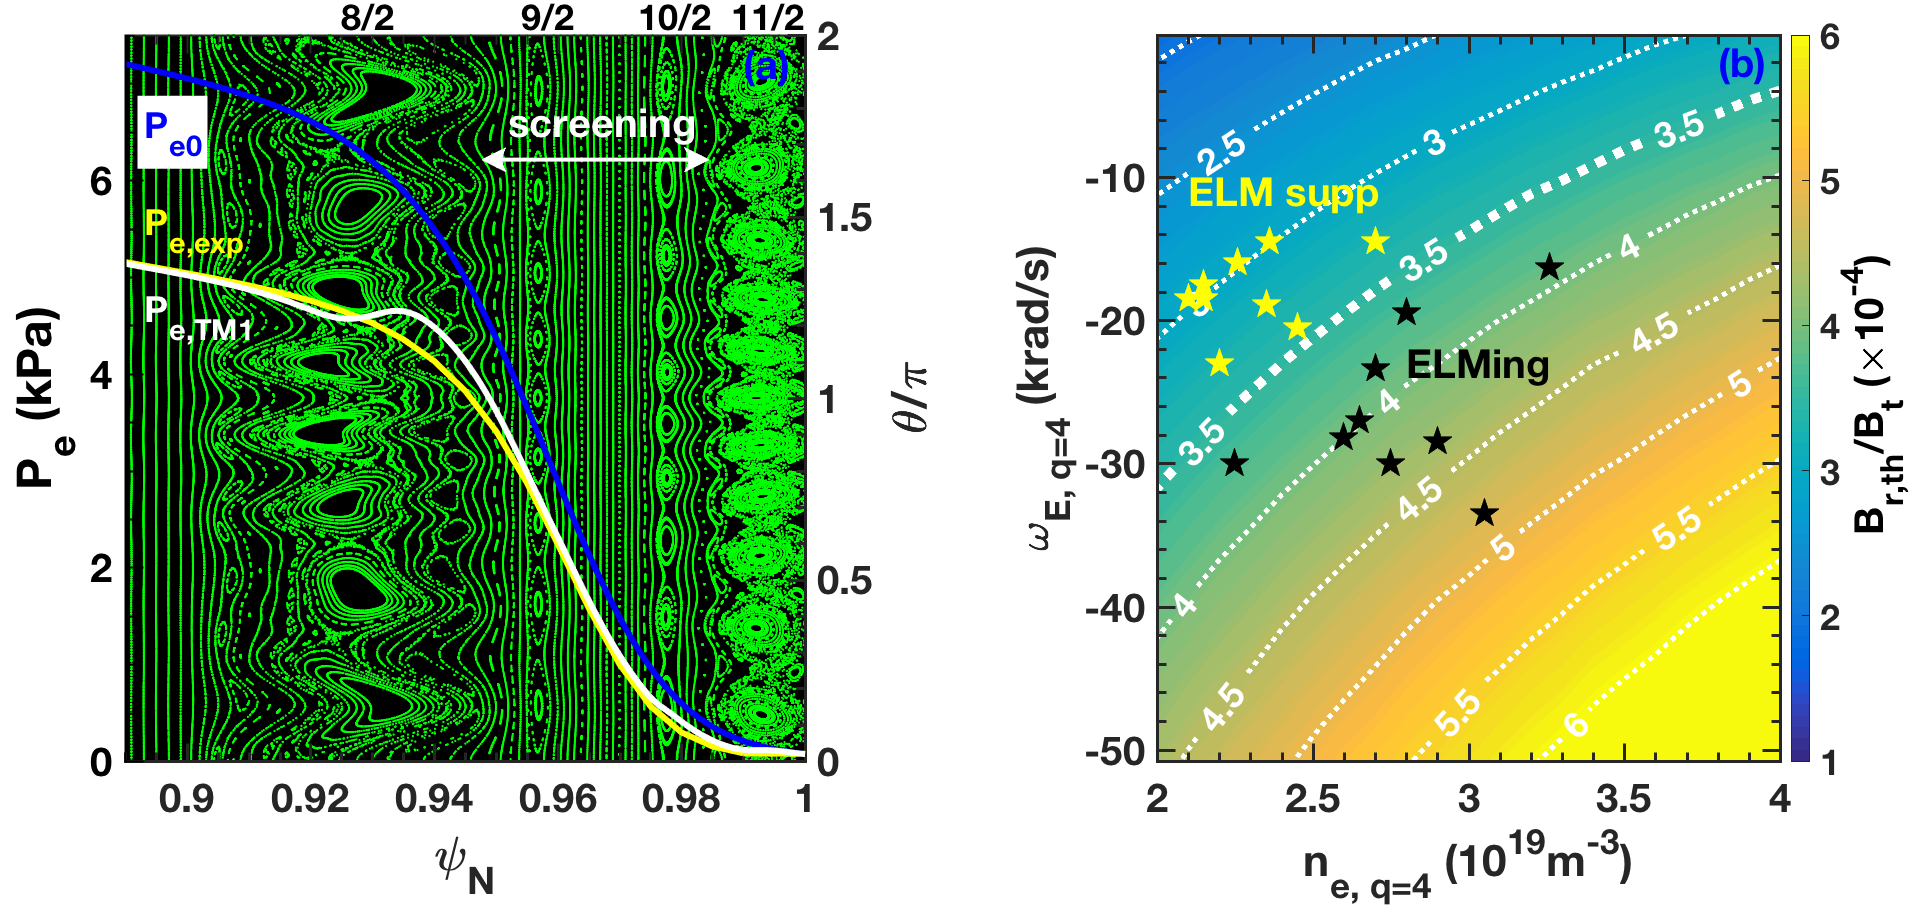 (a) Poincaré plot of the magnetic surfaces overlaid with the electron pressure before RMP (blue) with RMP (yellow) and TM1 simulation (white). (b) Prediction of the pedestal-top penetration threshold $B_{r,th}/B_t$ vs $n_e$ and $\omega_E$ overlaid with $n=2$ database of ELM suppressed (yellow) and ELMing (black) plasmas.